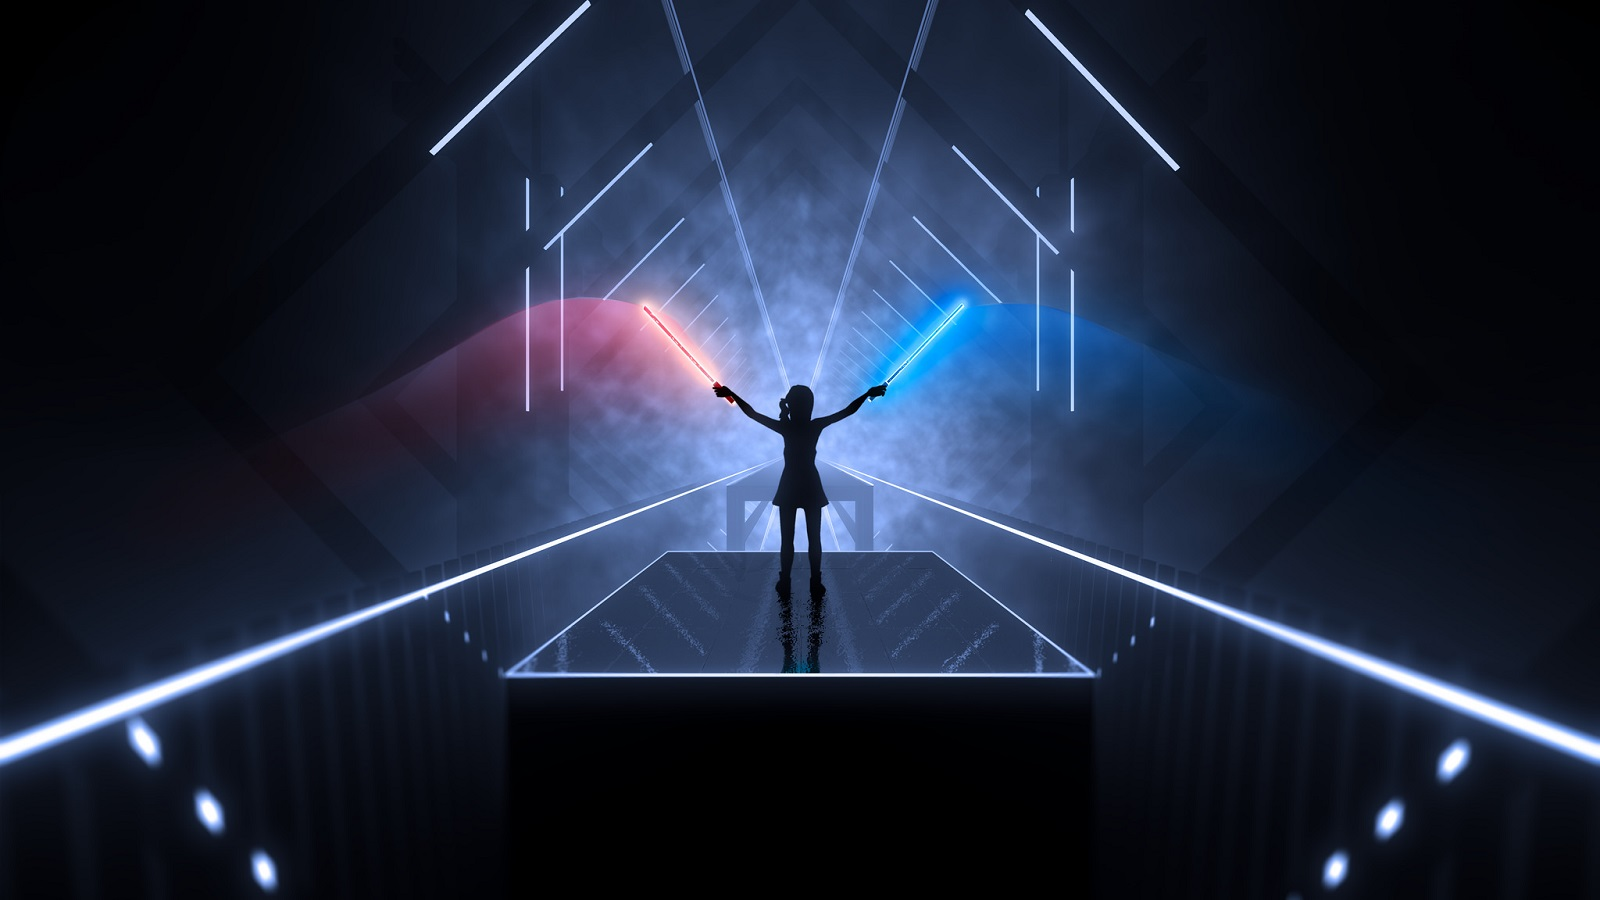 Beat Saber Sells More Than 1 Million Copies And Releases First Music Pack Featuring Monstercat